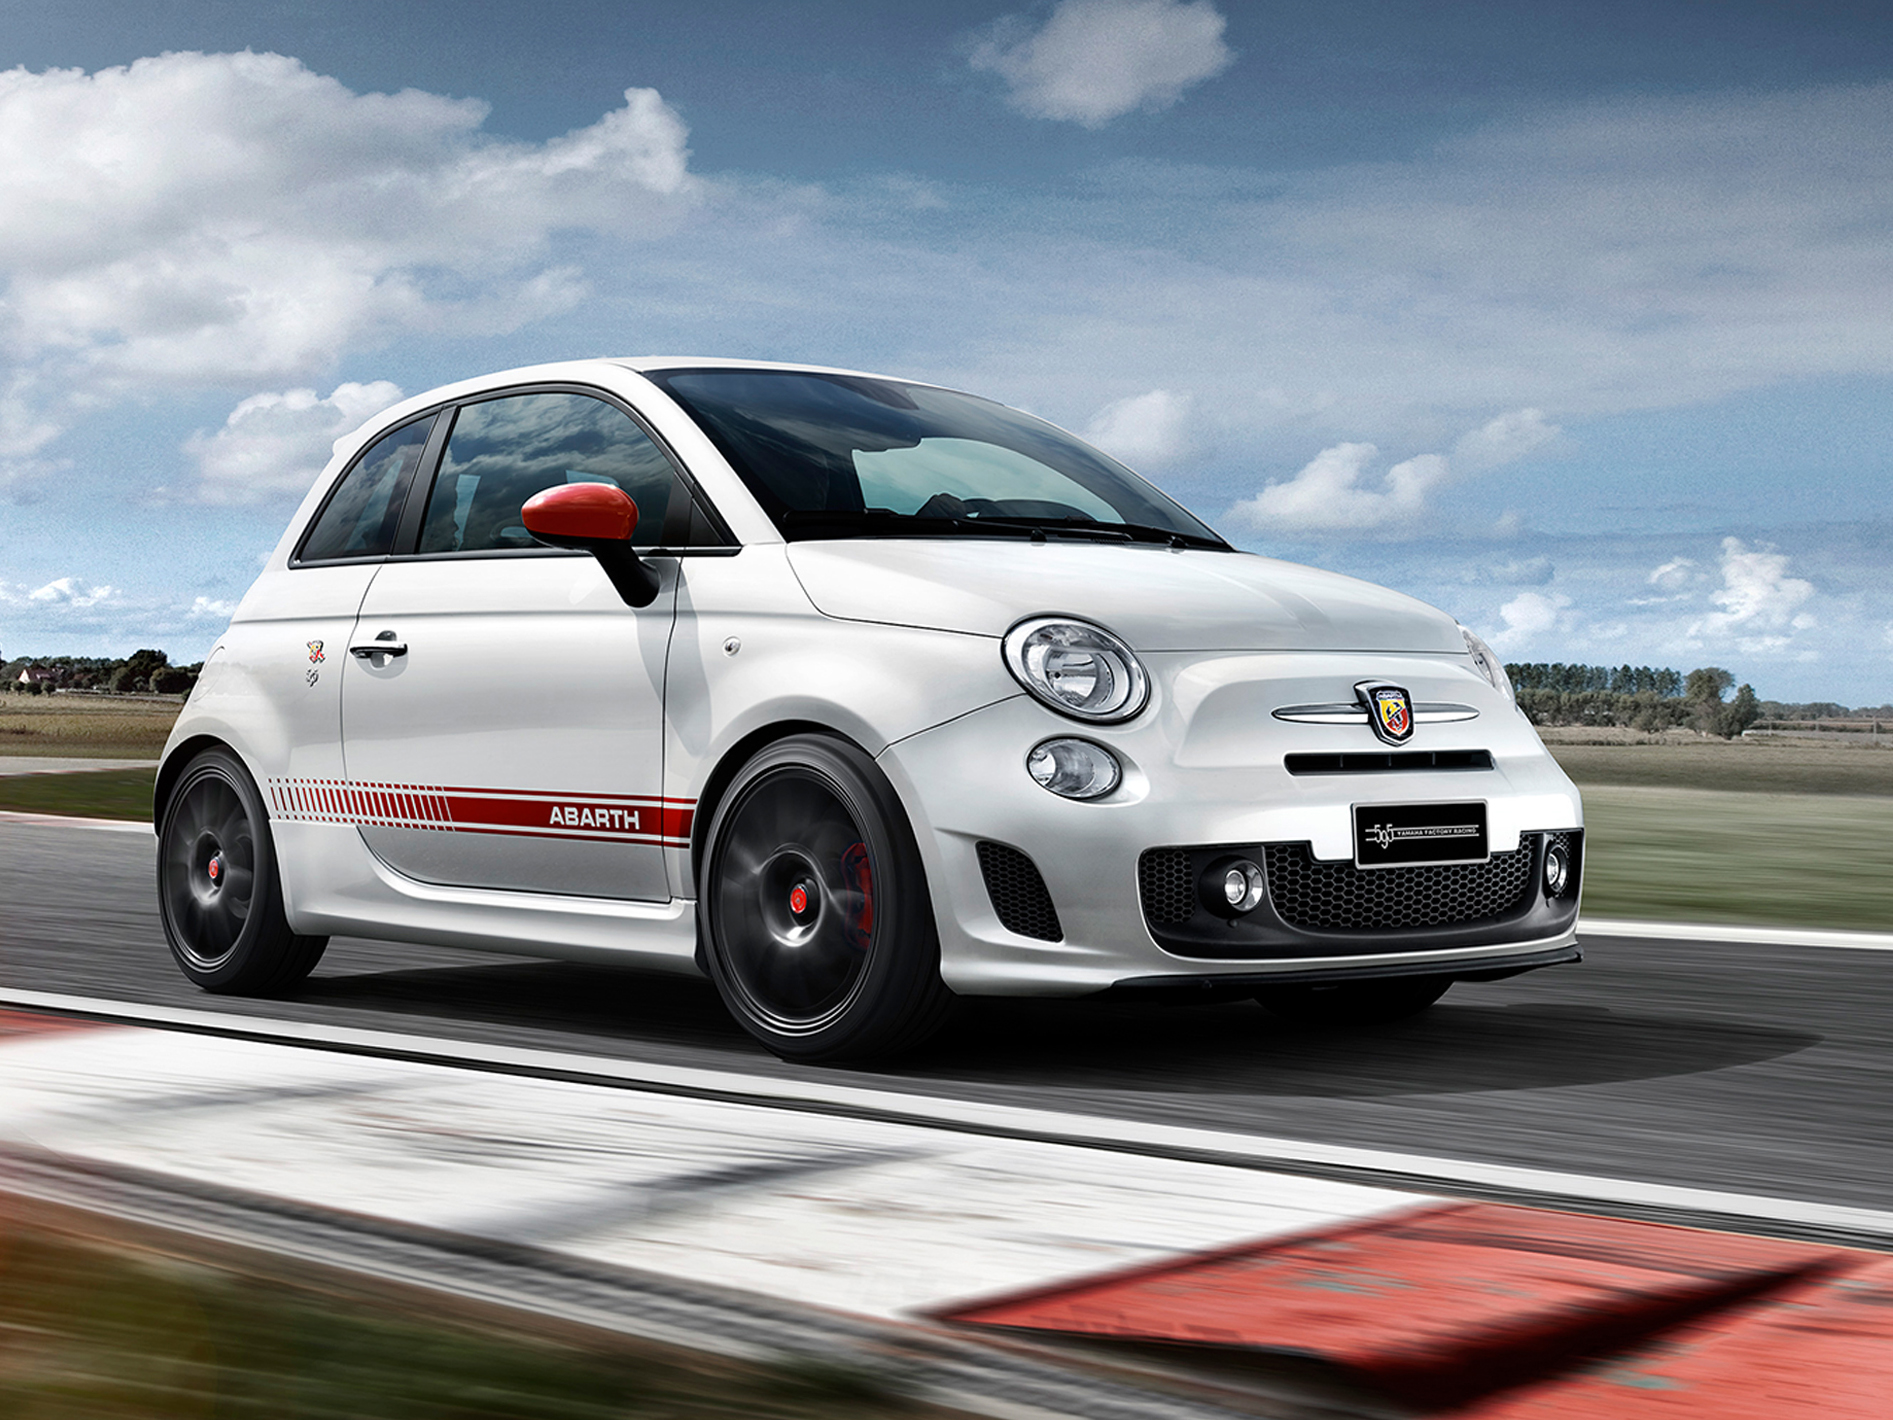 Abarth 595 Yamaha Factory Racing Edition